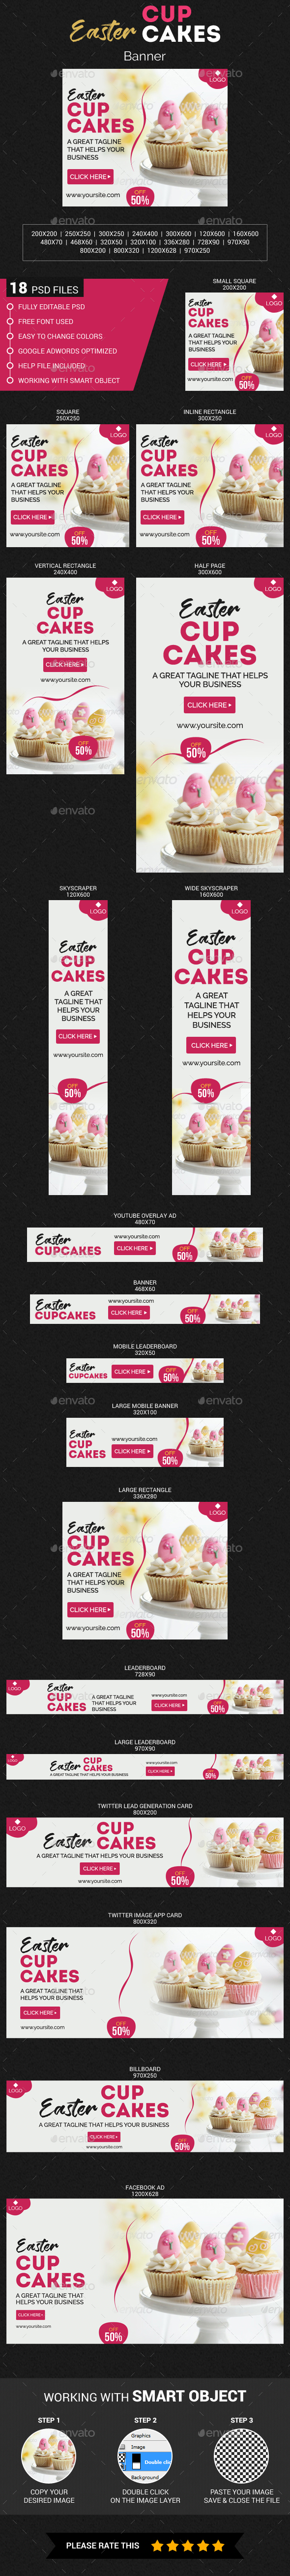 Easter Cupcakes Banner - Banners & Ads Web Elements